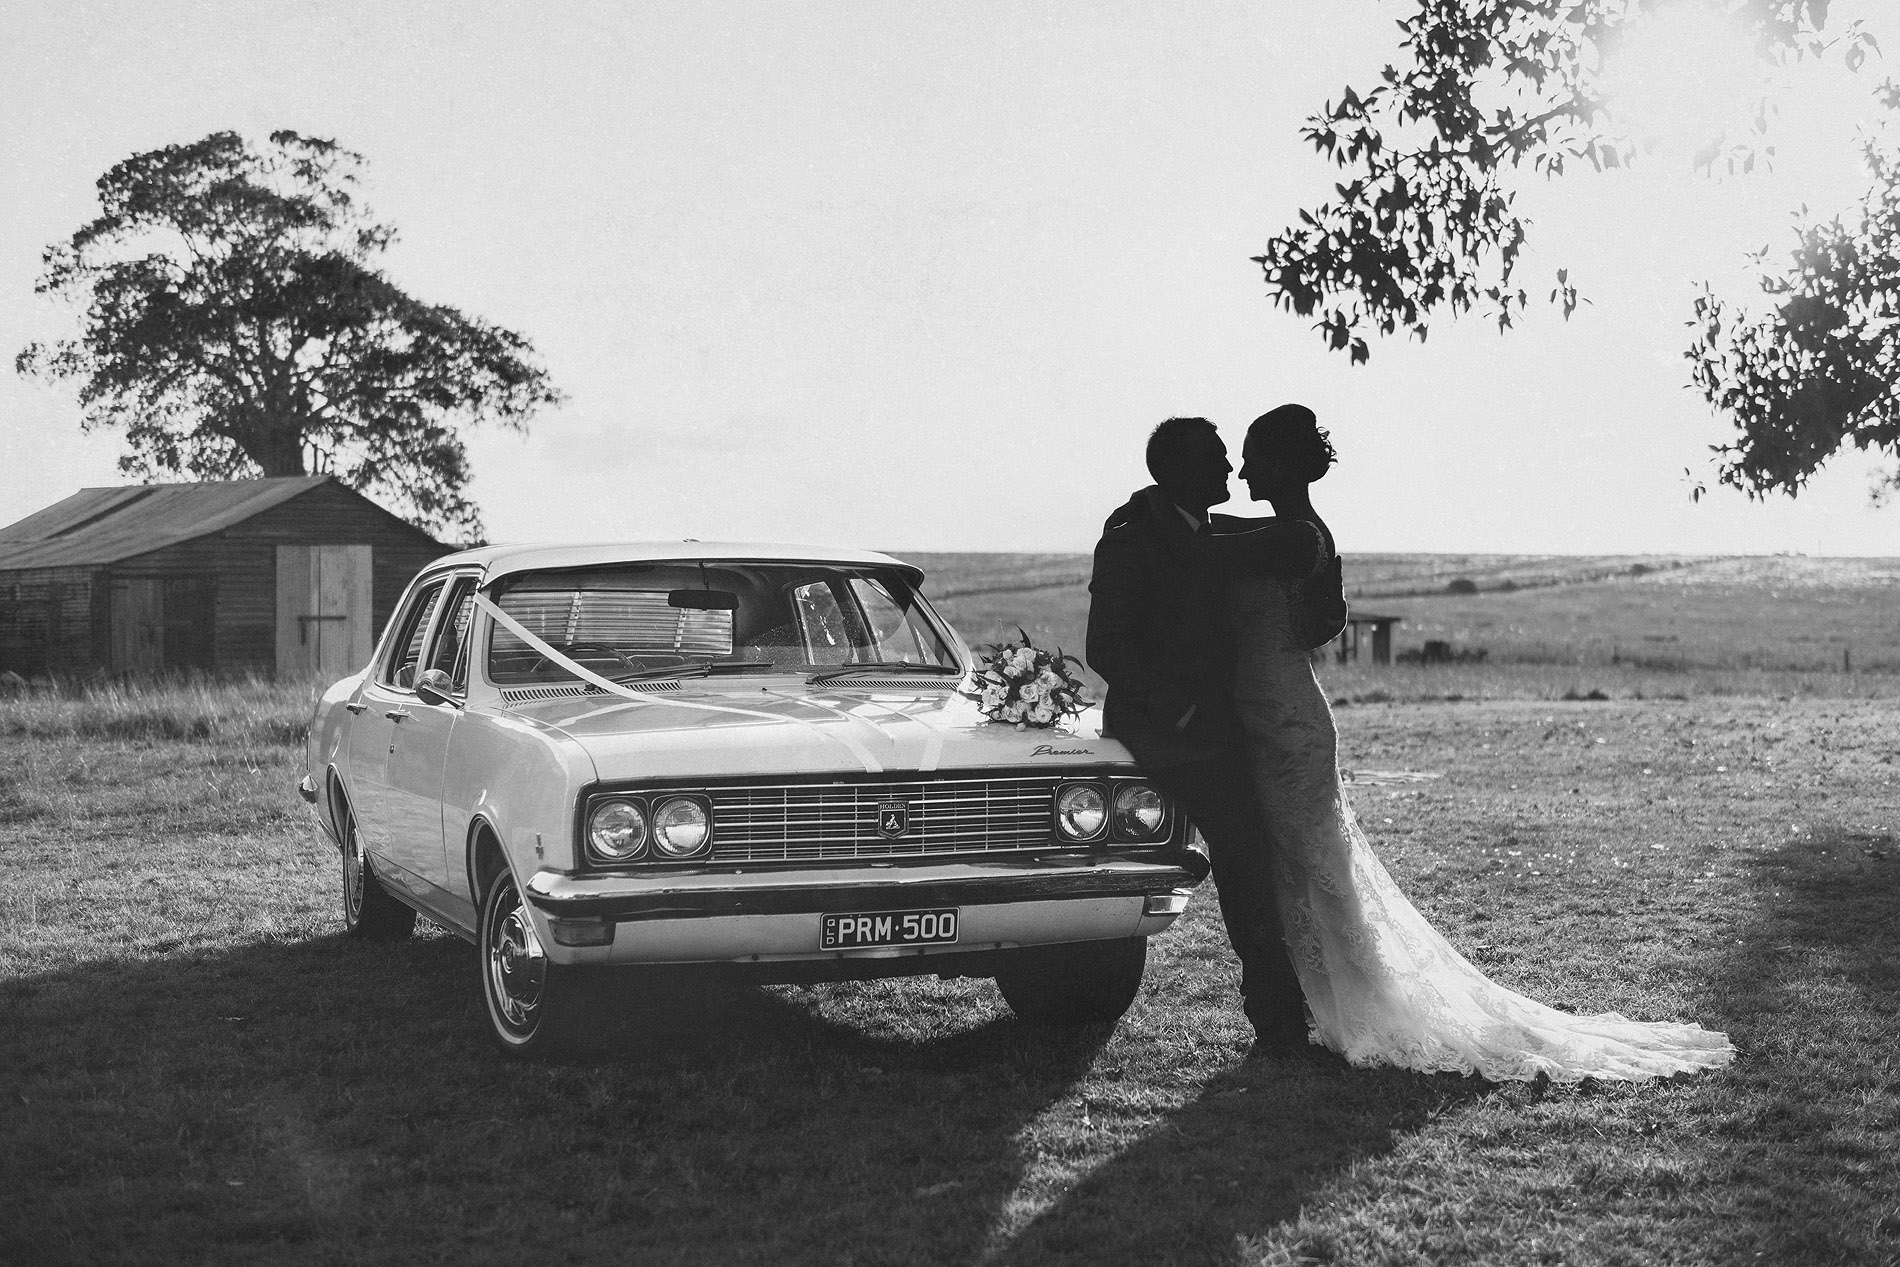 181110 0755aaaa textured bebes farmhouse prem premier holden classic silhouette moody arty somerset dam wedding